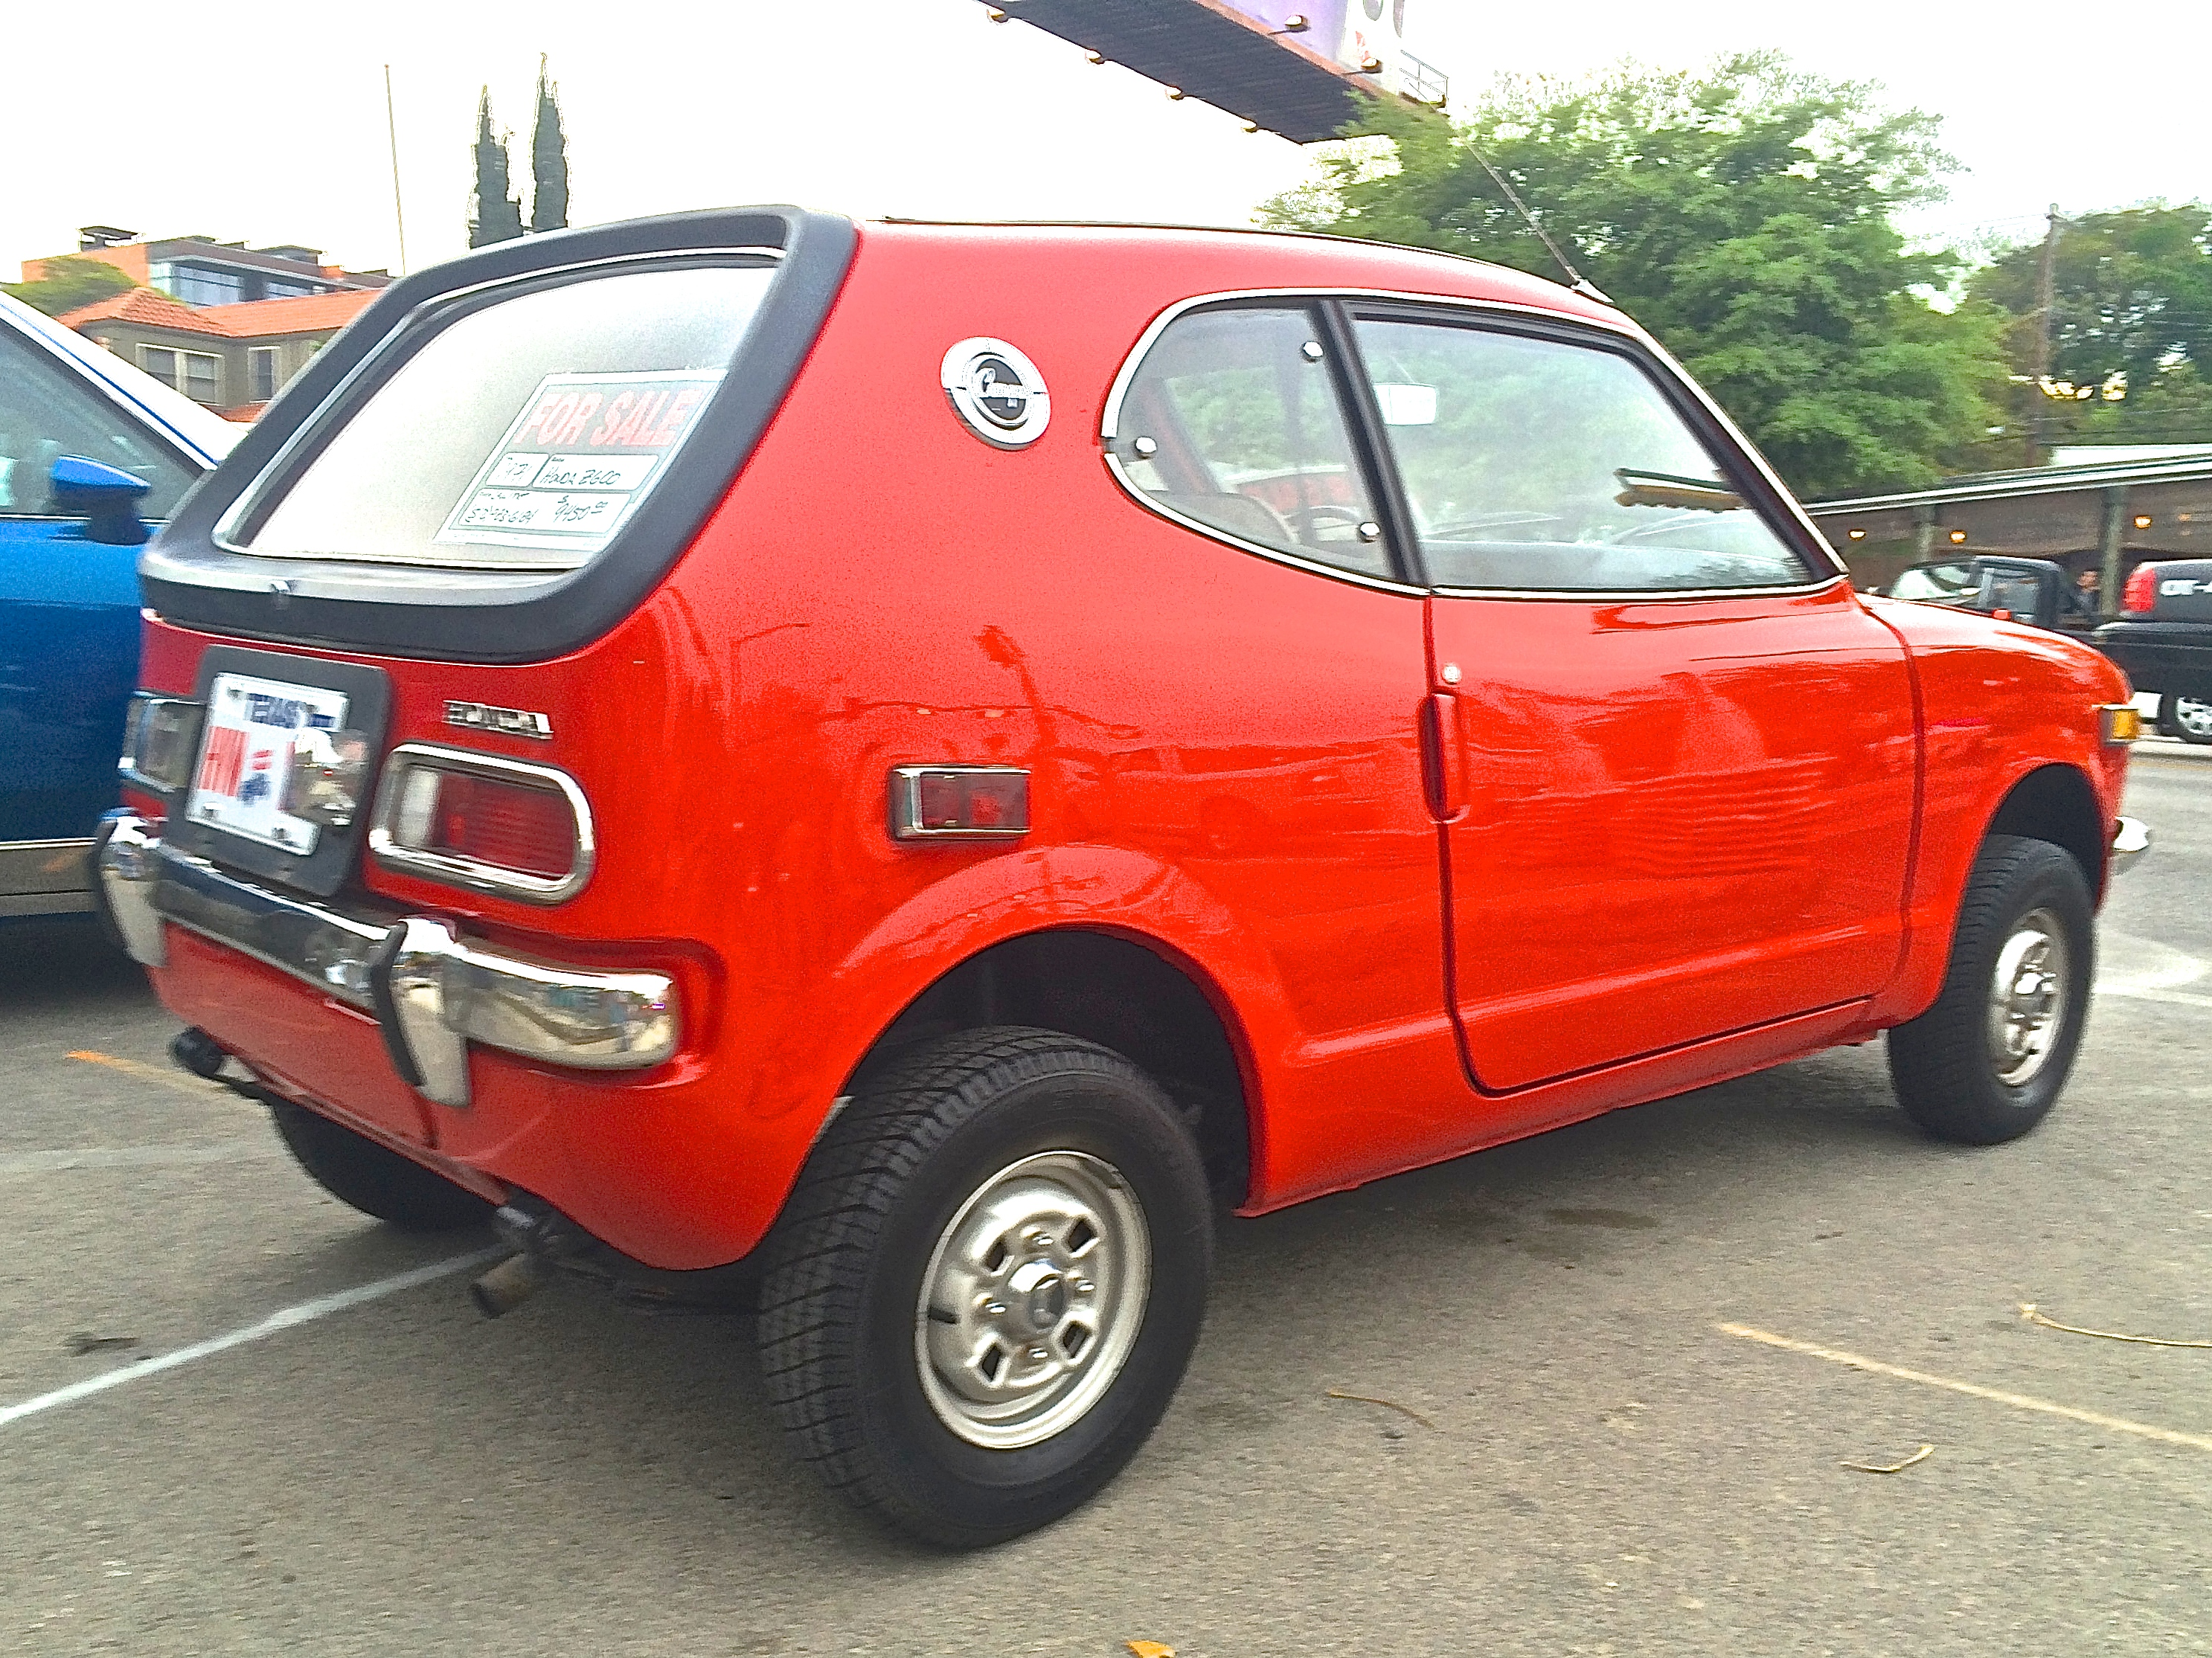 1971 Honda Z600 For Sale | ATX Car Pictures | Real Pics from Austin TX Streets, Backyards & Garages